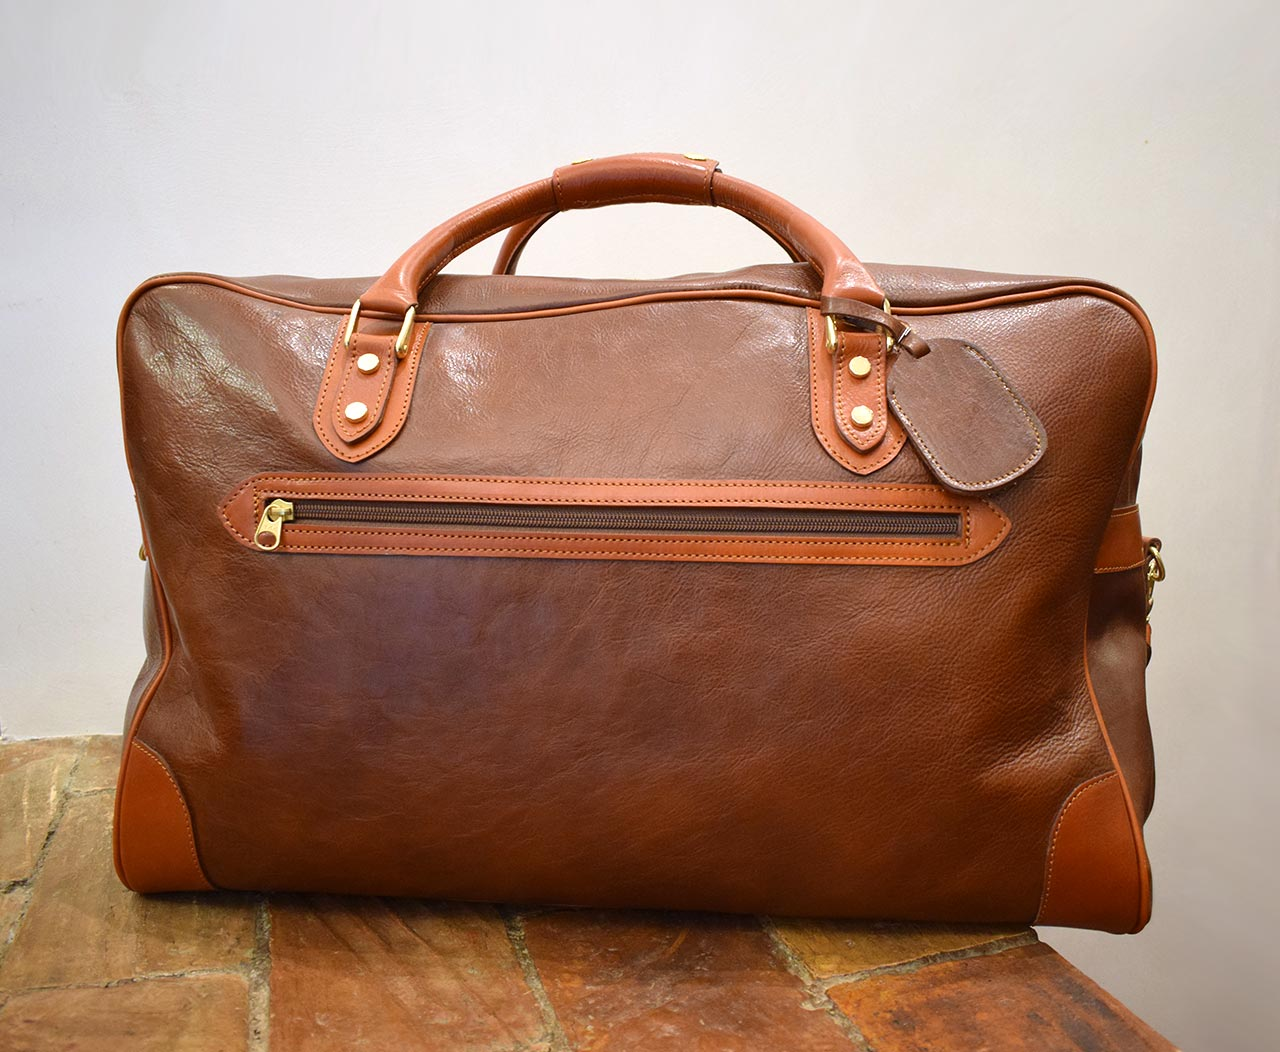 Italian leather handmade travel bag - Mancini Leather